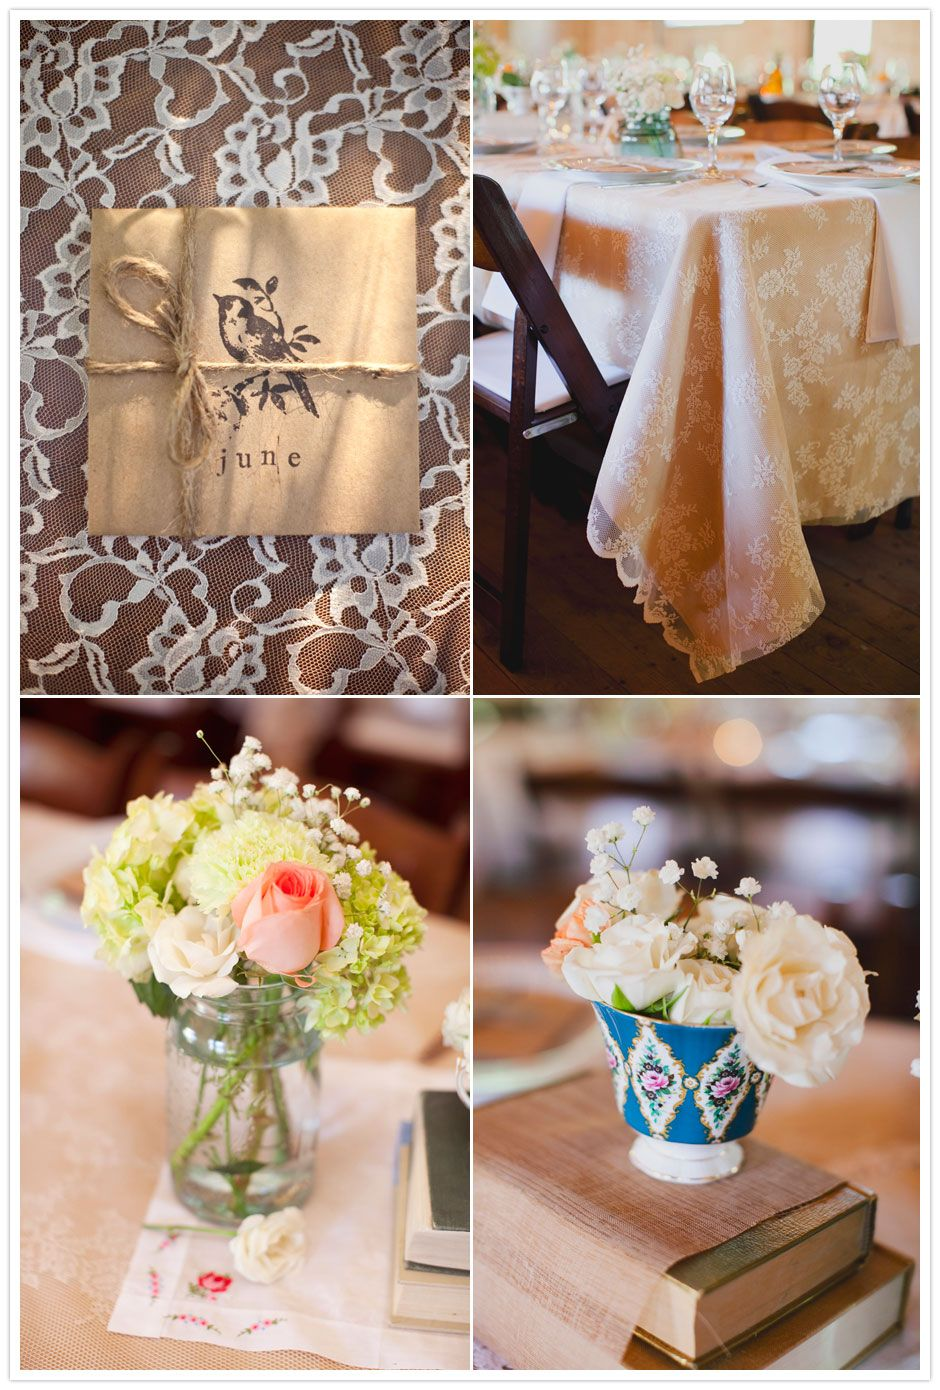 Vintage Inspired Camp Wedding....Lace on Tables, Yes Please!